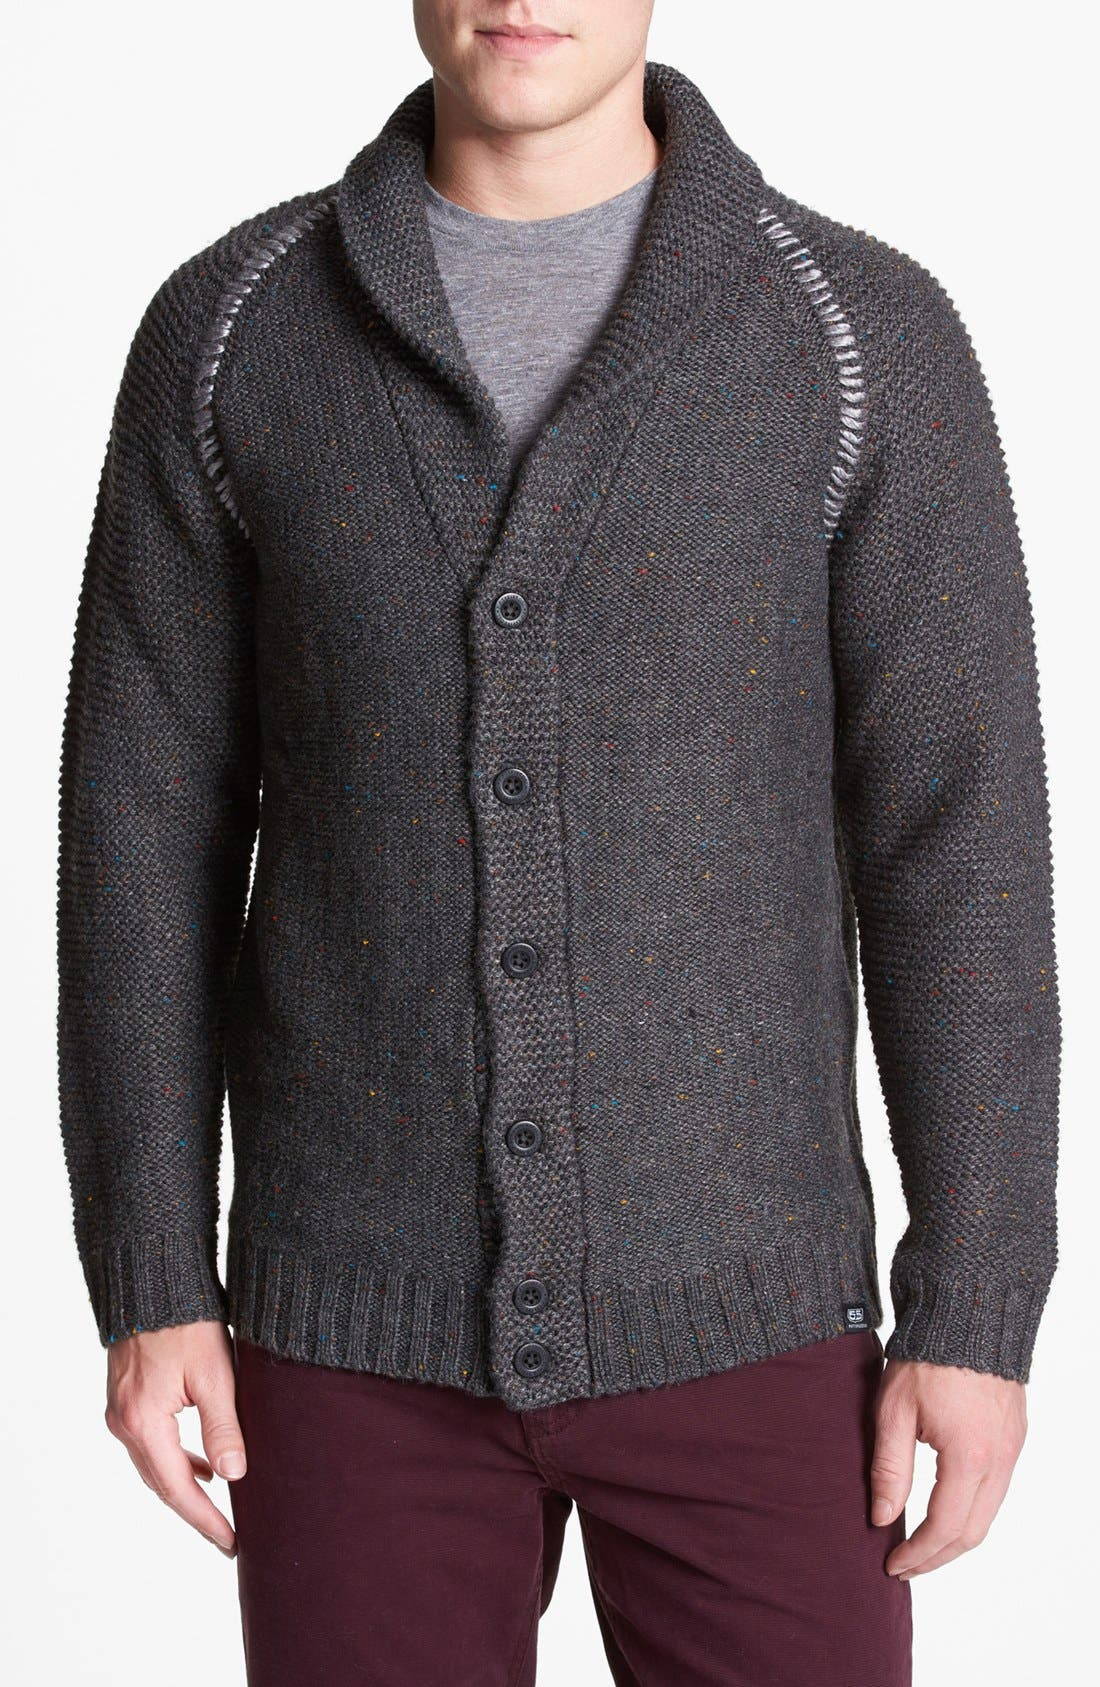 Alternate Image 1 Selected - 55DSL 'Kexico' Shawl Cardigan